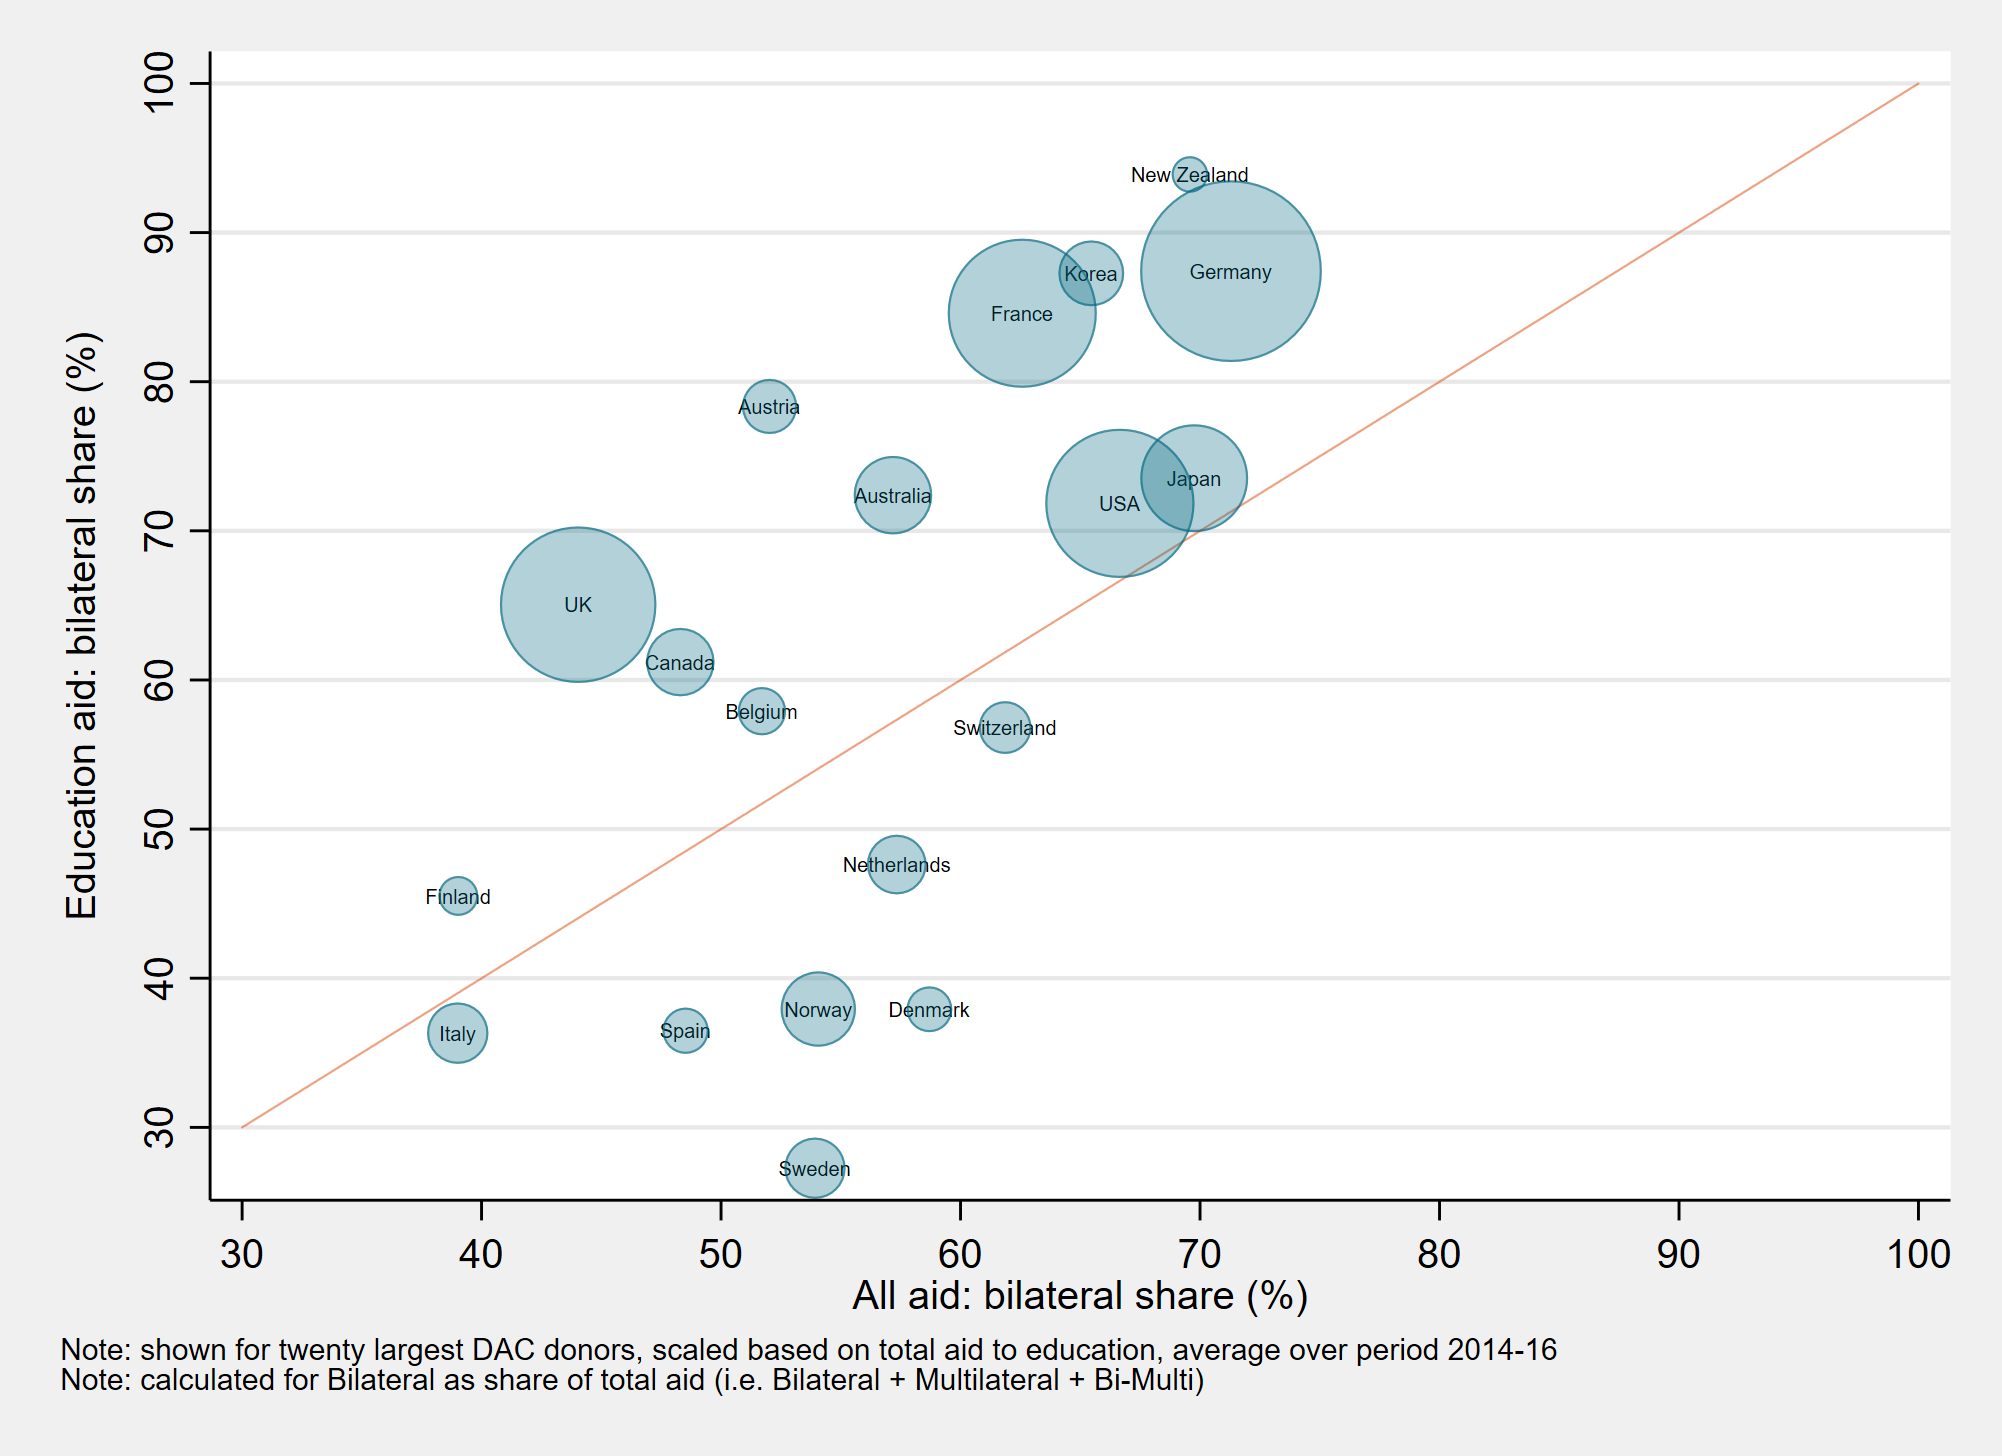 Compared with their overall aid allocation, large donors give considerably more education aid through bilateral (rather than multilateral) channels.